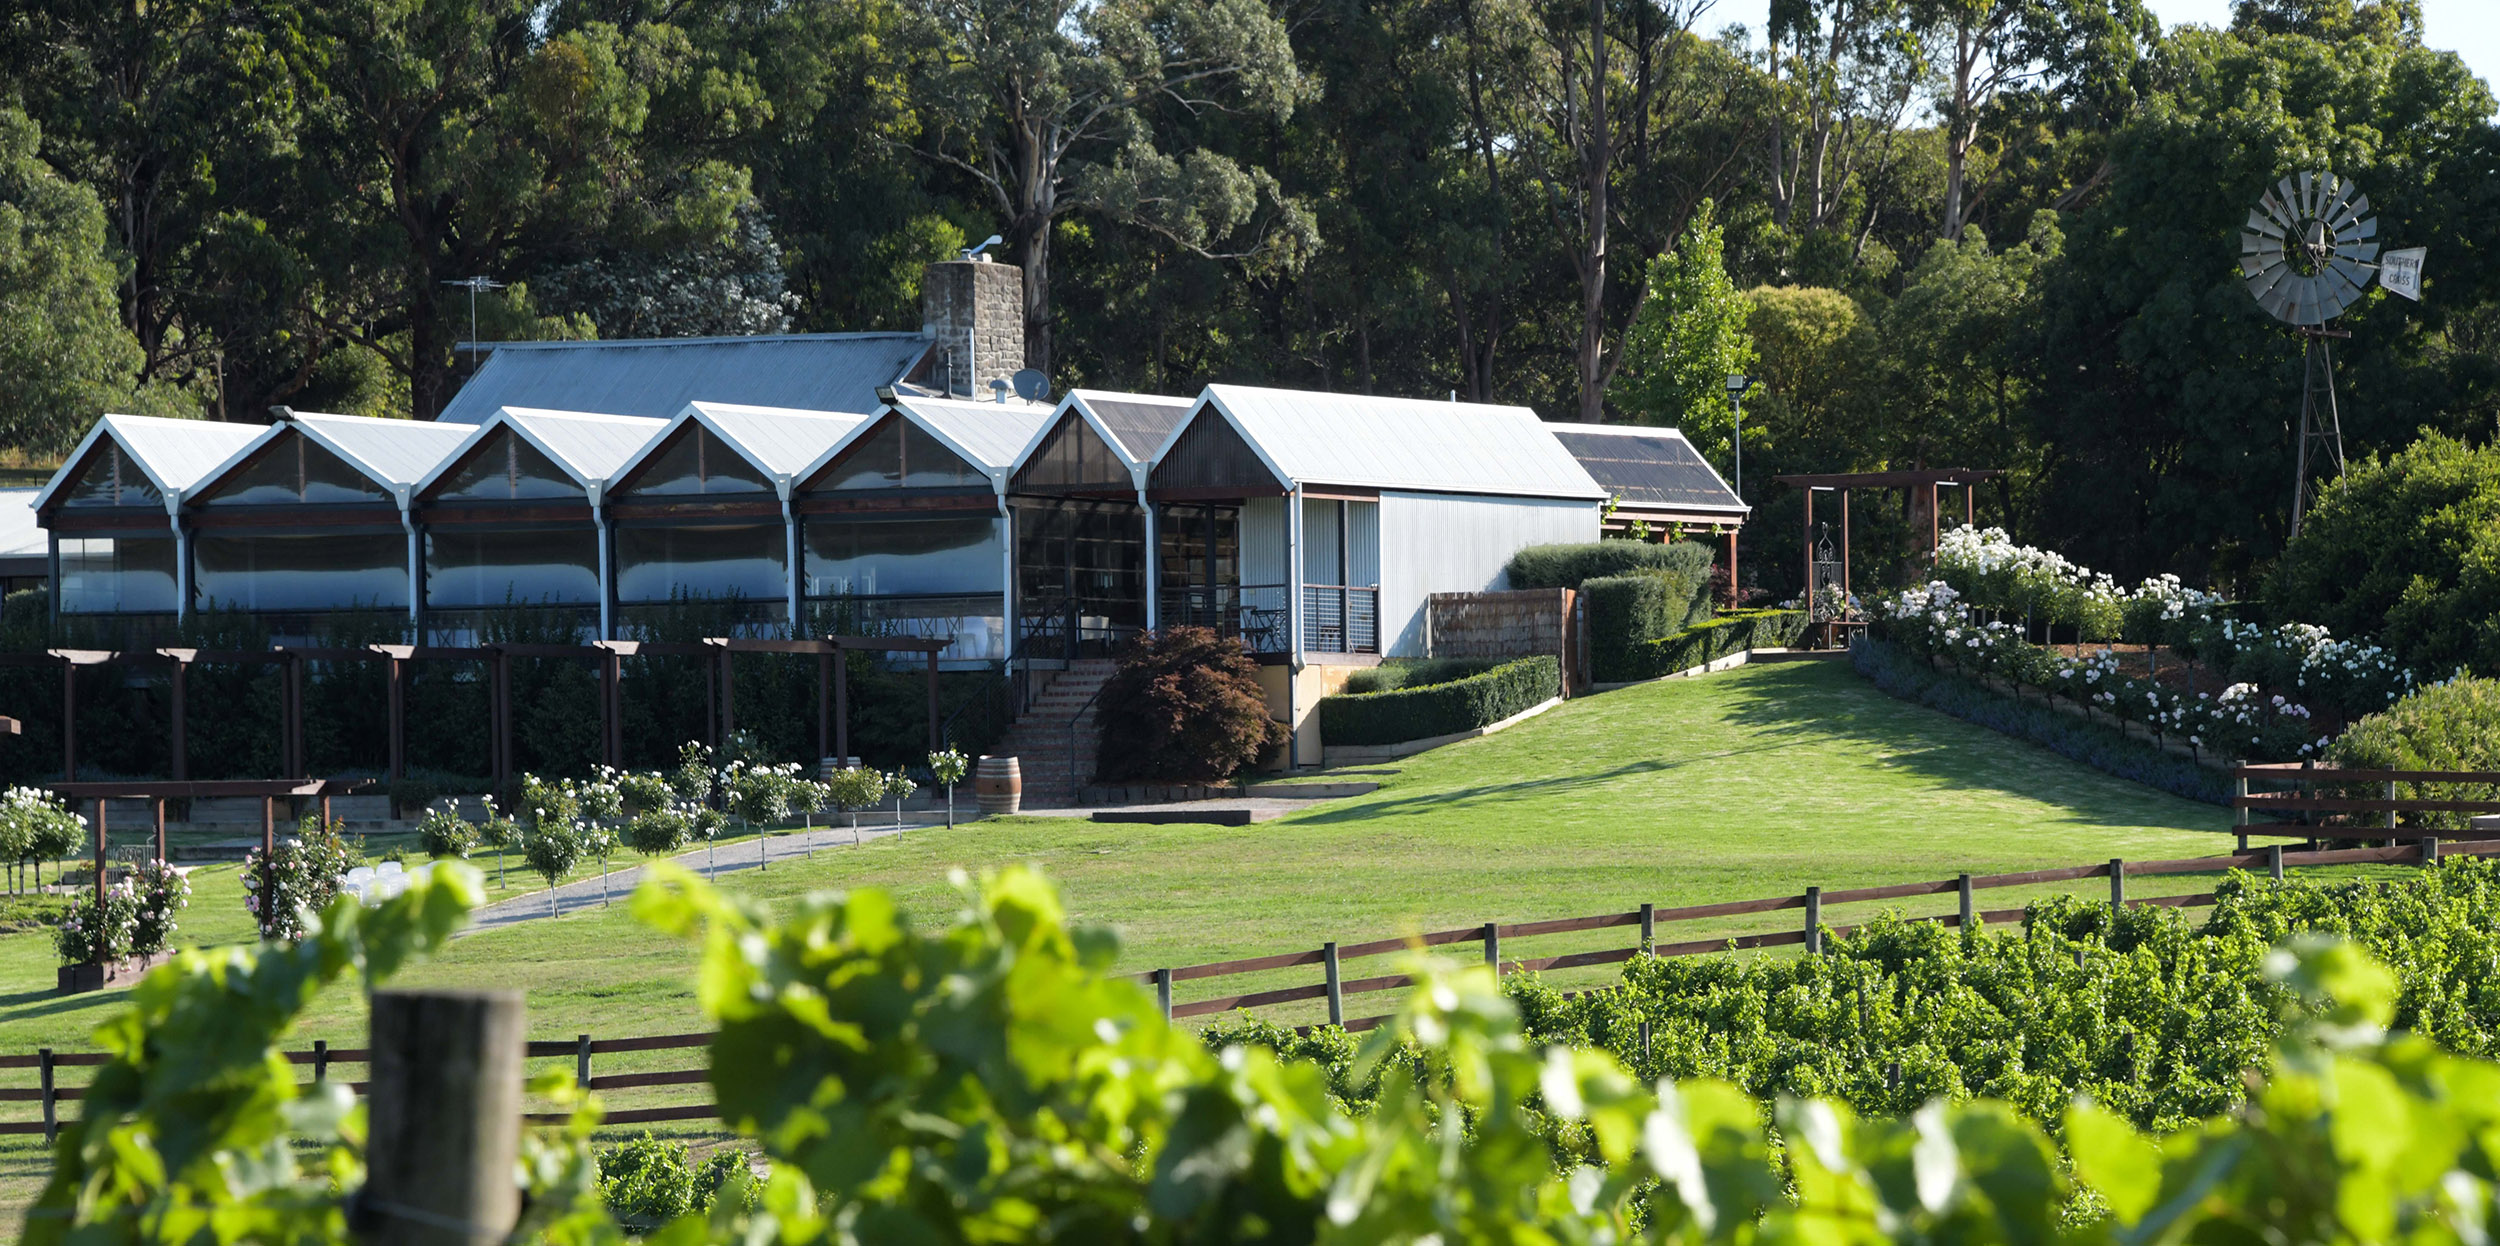 Yarra Ranges Estate Winnery in Monbulk